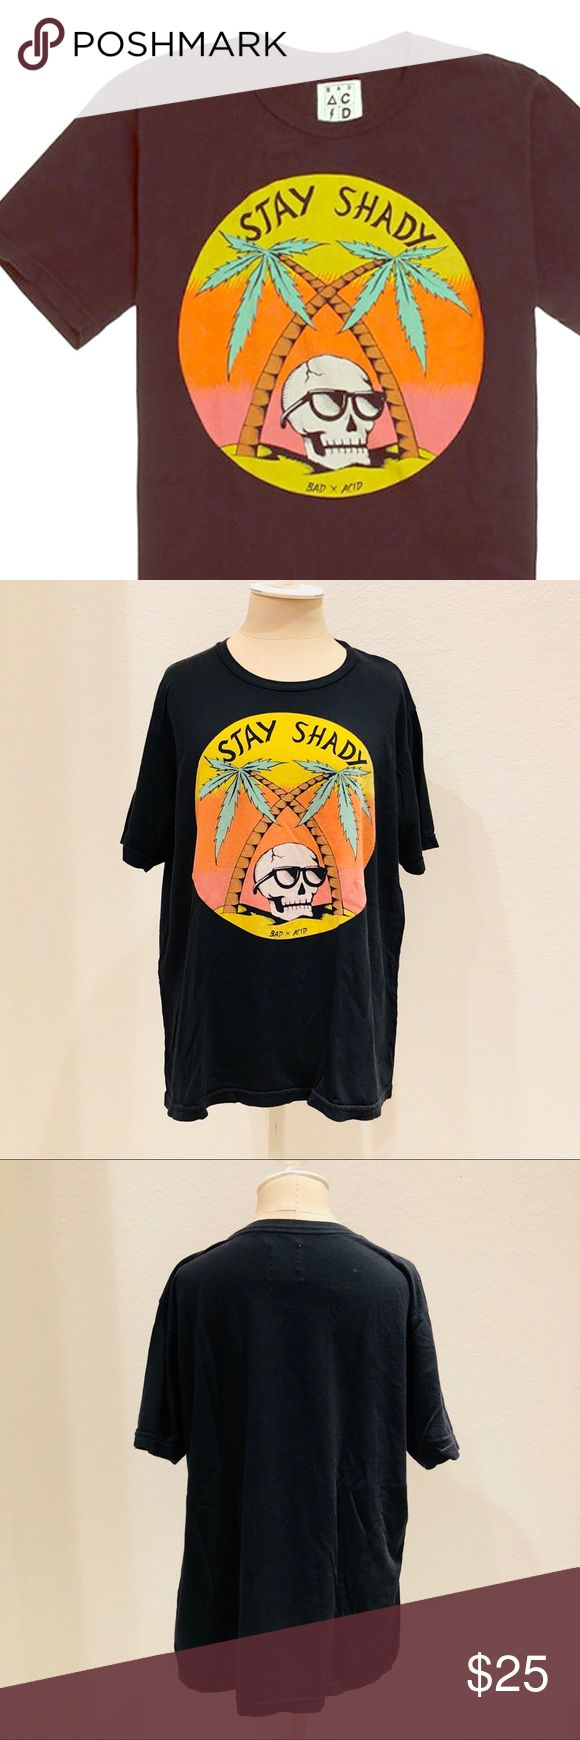 Stay Shady Bad Acid T-Shirt Stay Shady T-Shirt — Brand: Bad Acid from PacSun — Size: Medium — Black with Multicolor Graphic — Short Sleeve Cotton Tee — Graphic Skull in Sunglasses Under Palm Trees  — EUC: Excellent Used Condition  🔅Offer what you find fair PacSun Shirts Tees - Short Sleeve